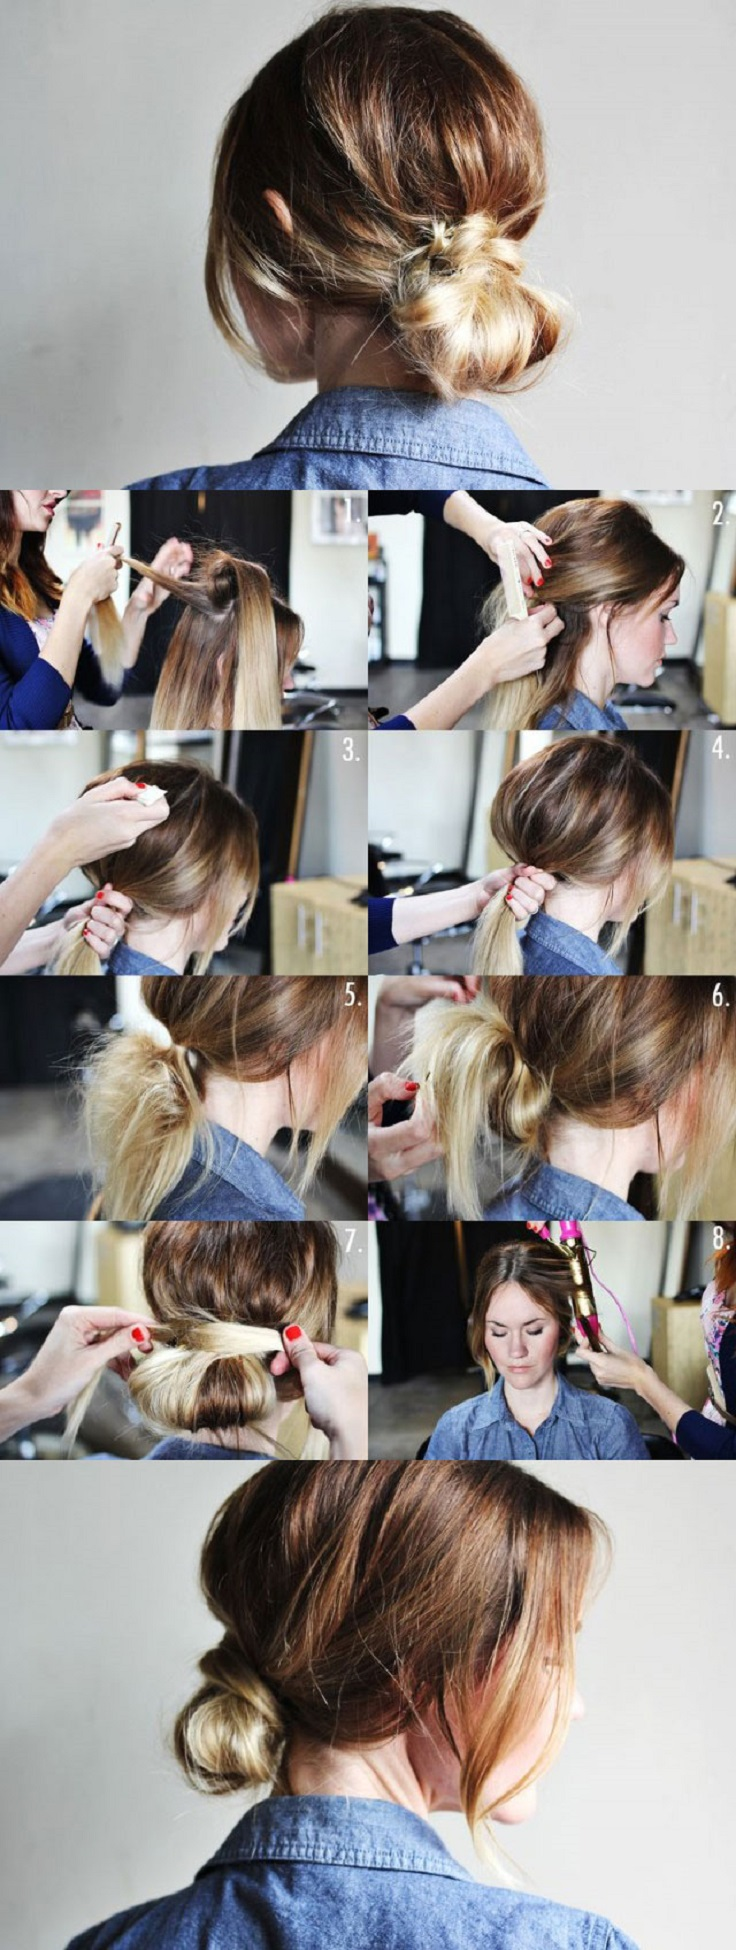 Top 10 Super Easy 5 Minute Hairstyles For Busy Ladies